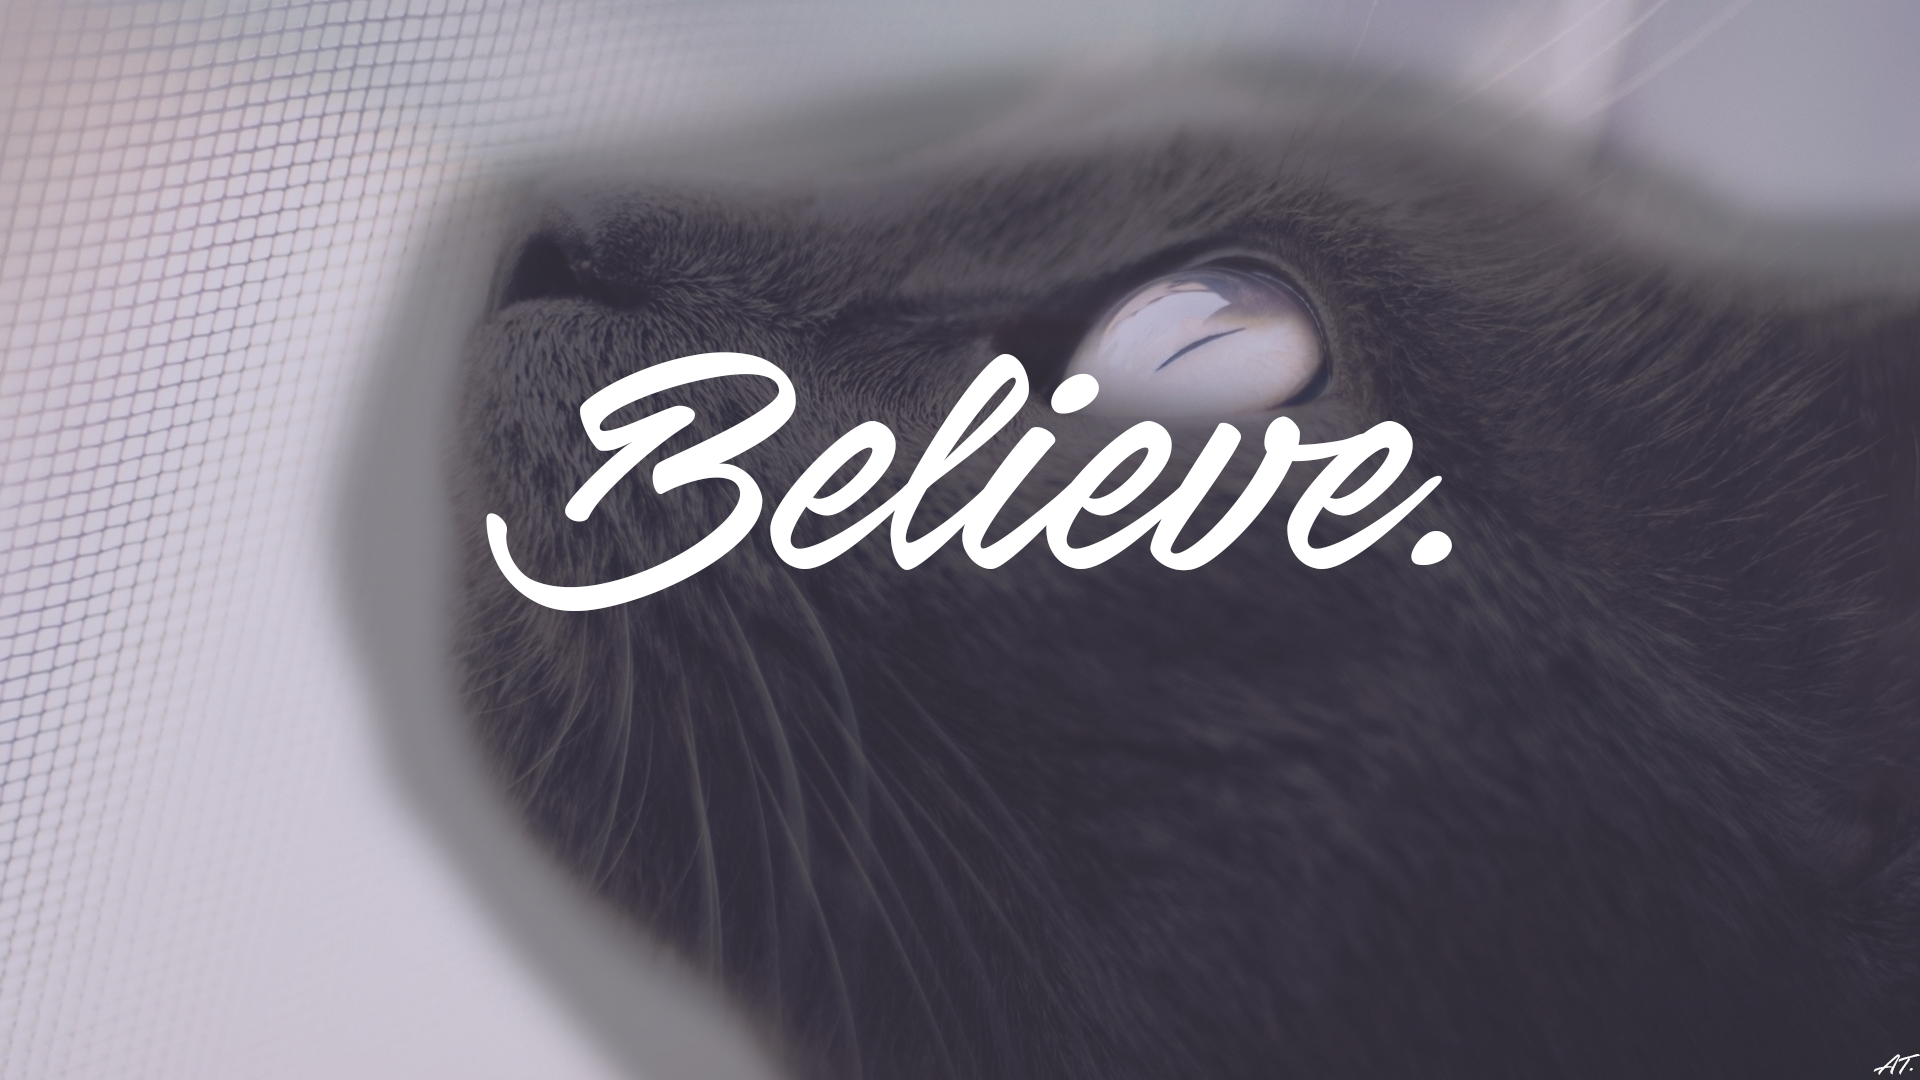 ... Believe, Dark, Writing Wallpapers HD / Desktop and Mobile Backgrounds